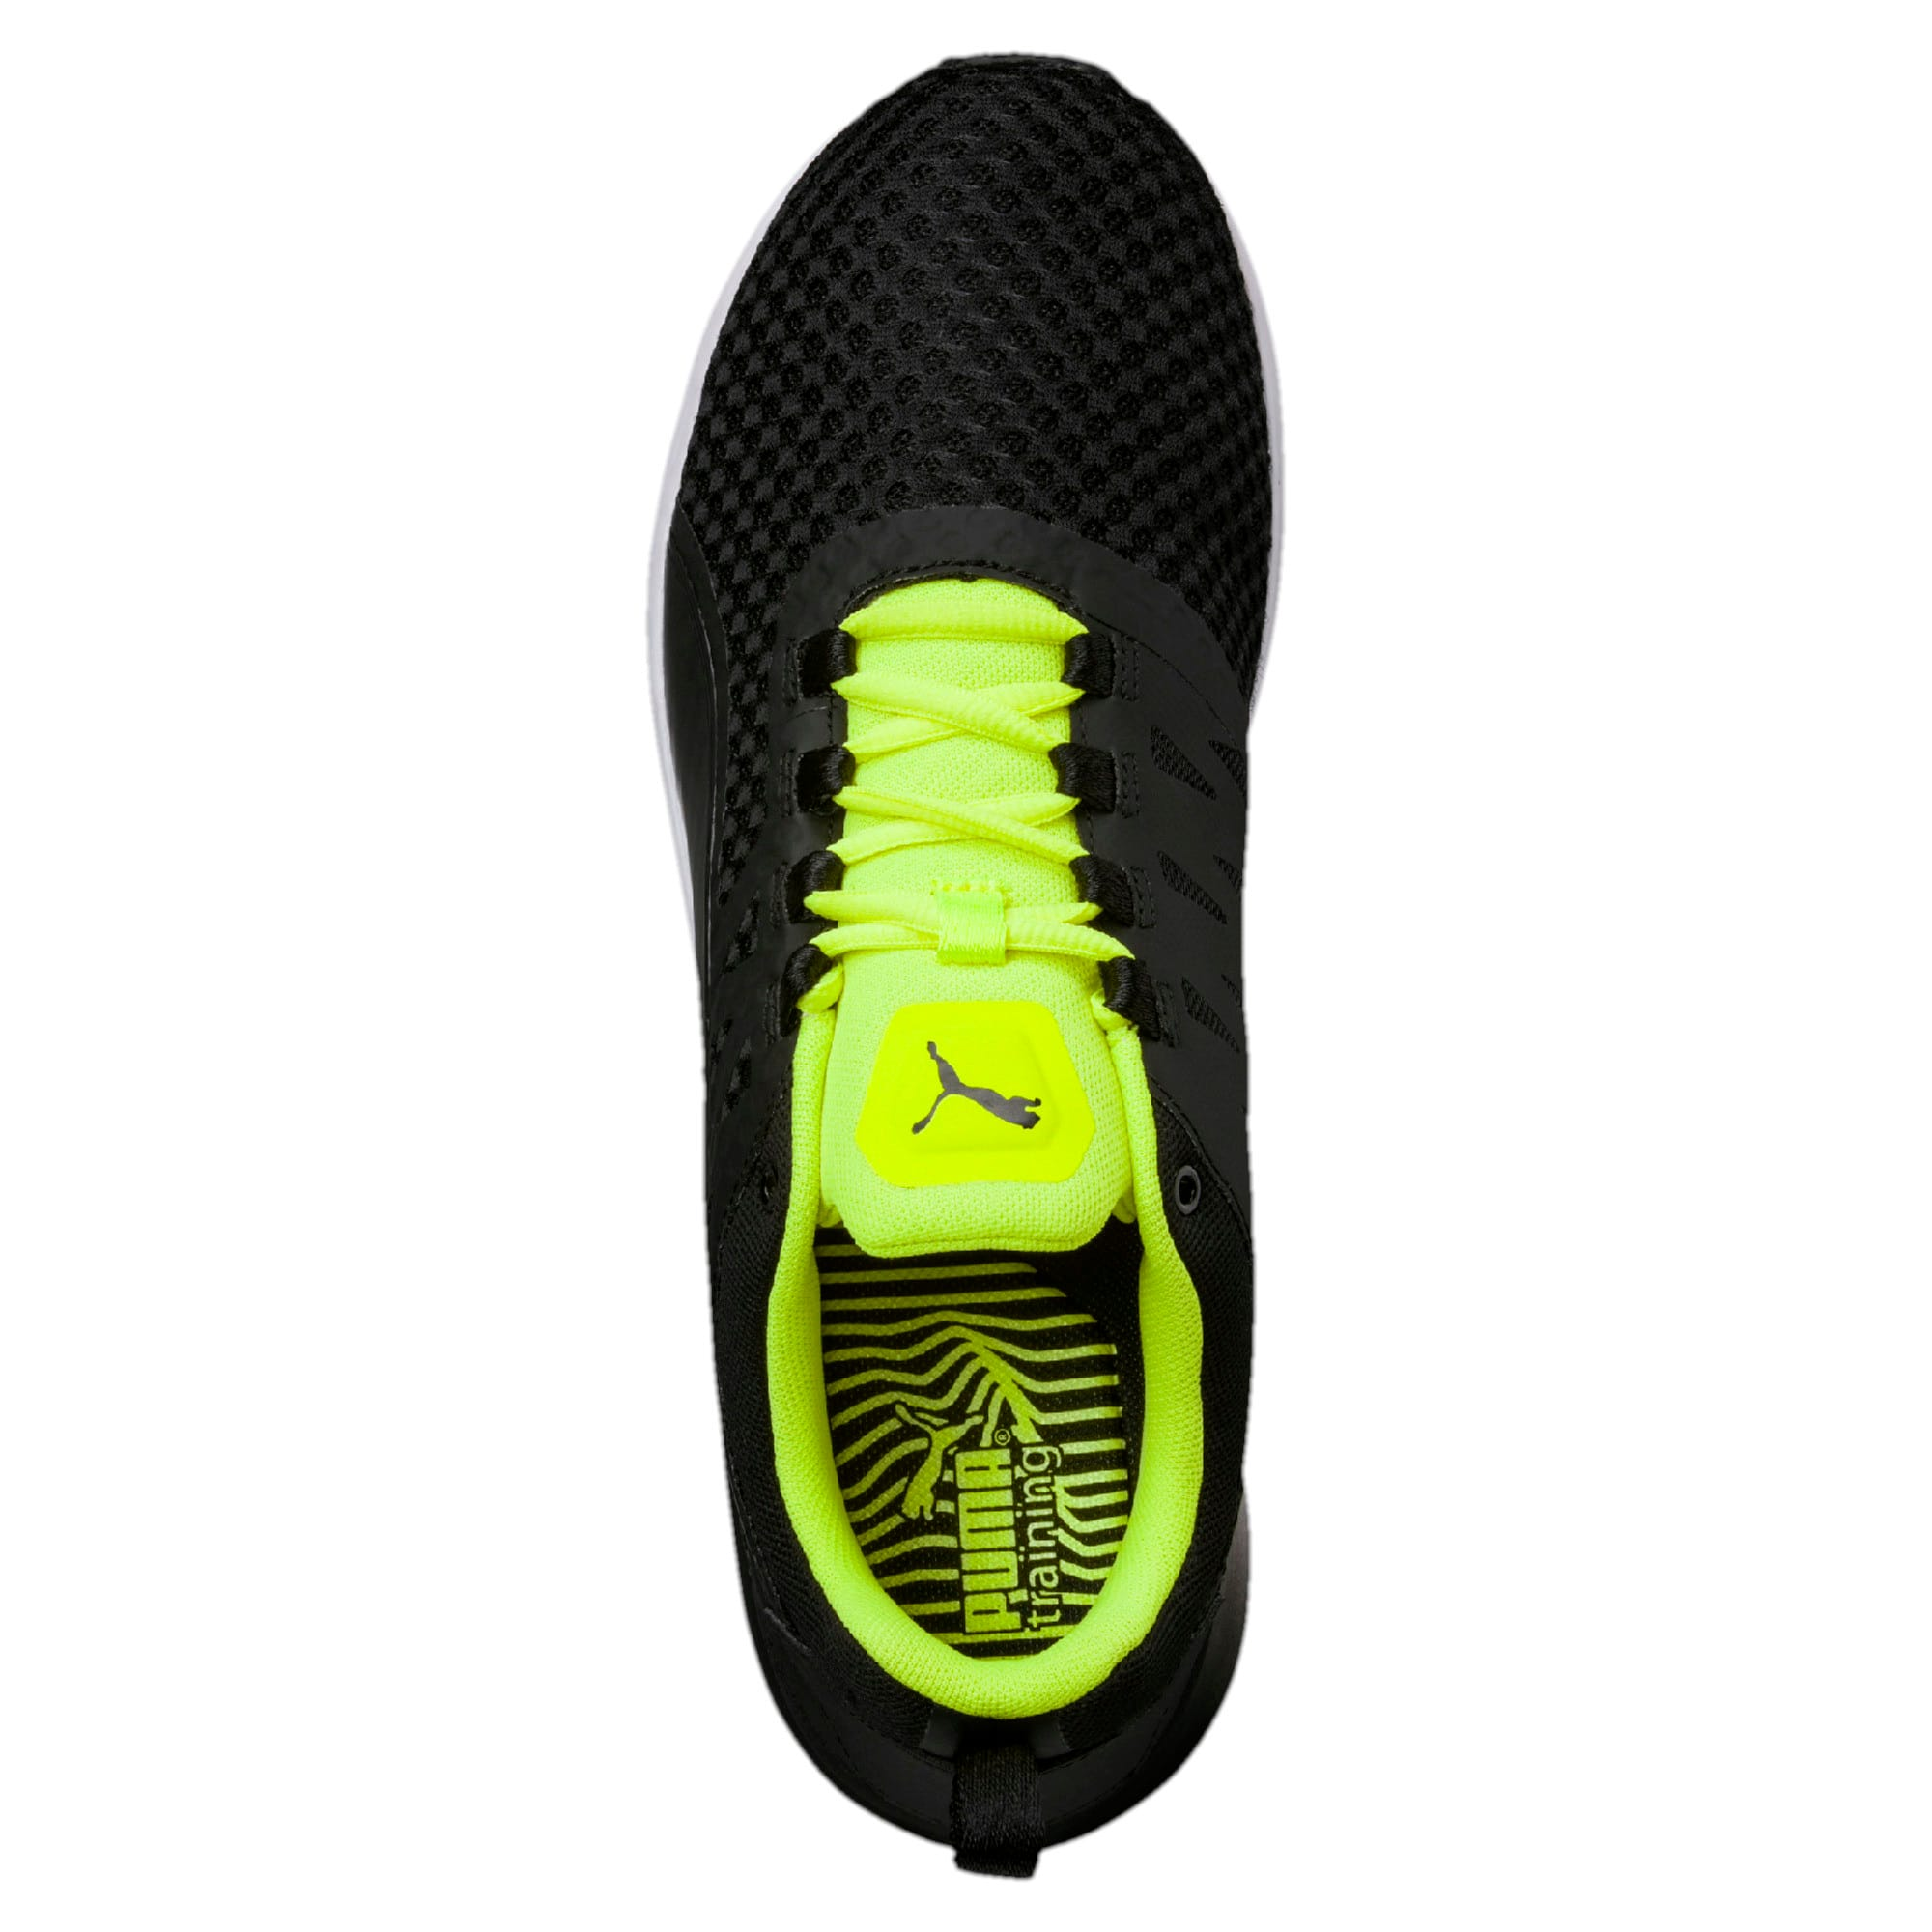 Thumbnail 4 of Pulse XT v2 Mesh Men's Training Shoes, Puma Black-Safety Yellow, medium-IND